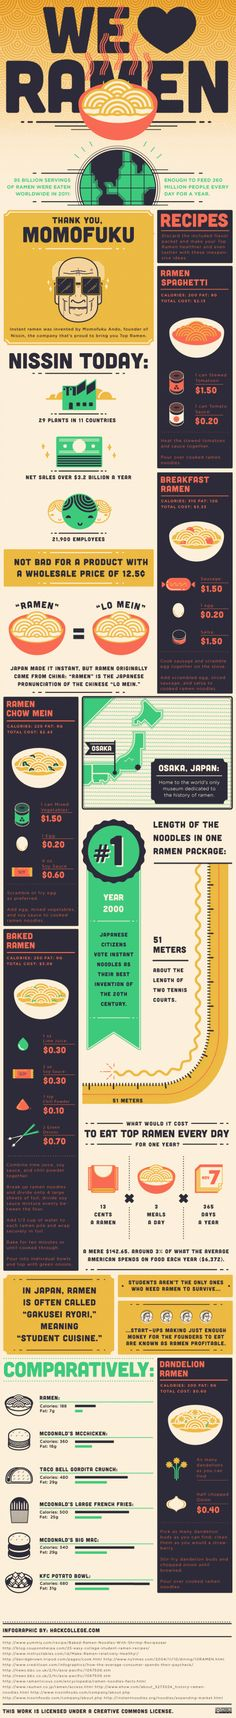 Some Facts about Ramen Noodles [infographic] | Daily Infographic